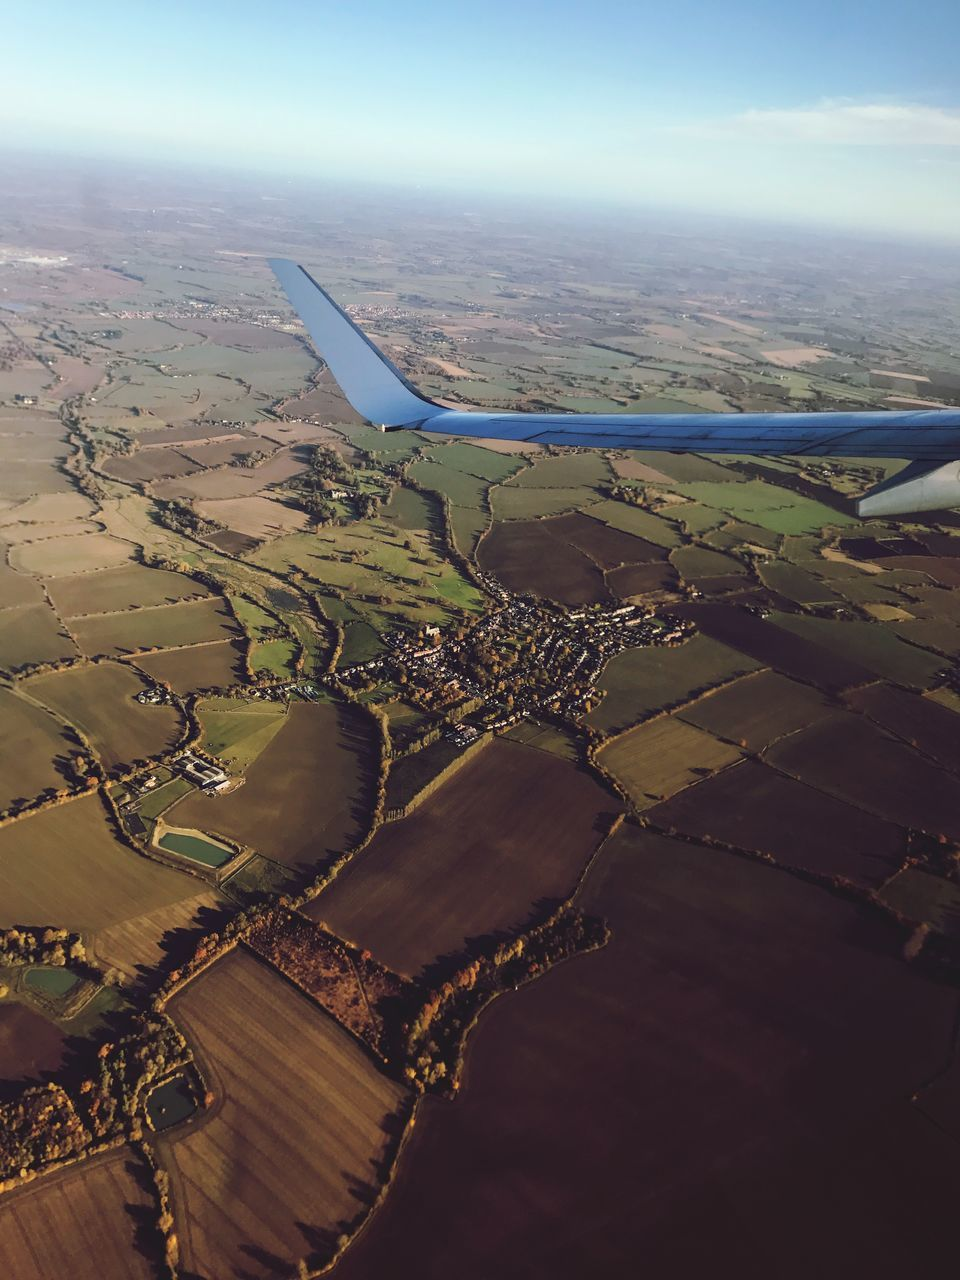 aerial view, landscape, airplane, transportation, scenics, tranquil scene, nature, outdoors, beauty in nature, journey, day, no people, aircraft wing, tranquility, sky, air vehicle, patchwork landscape, flying, airplane wing, sea, water, view into land